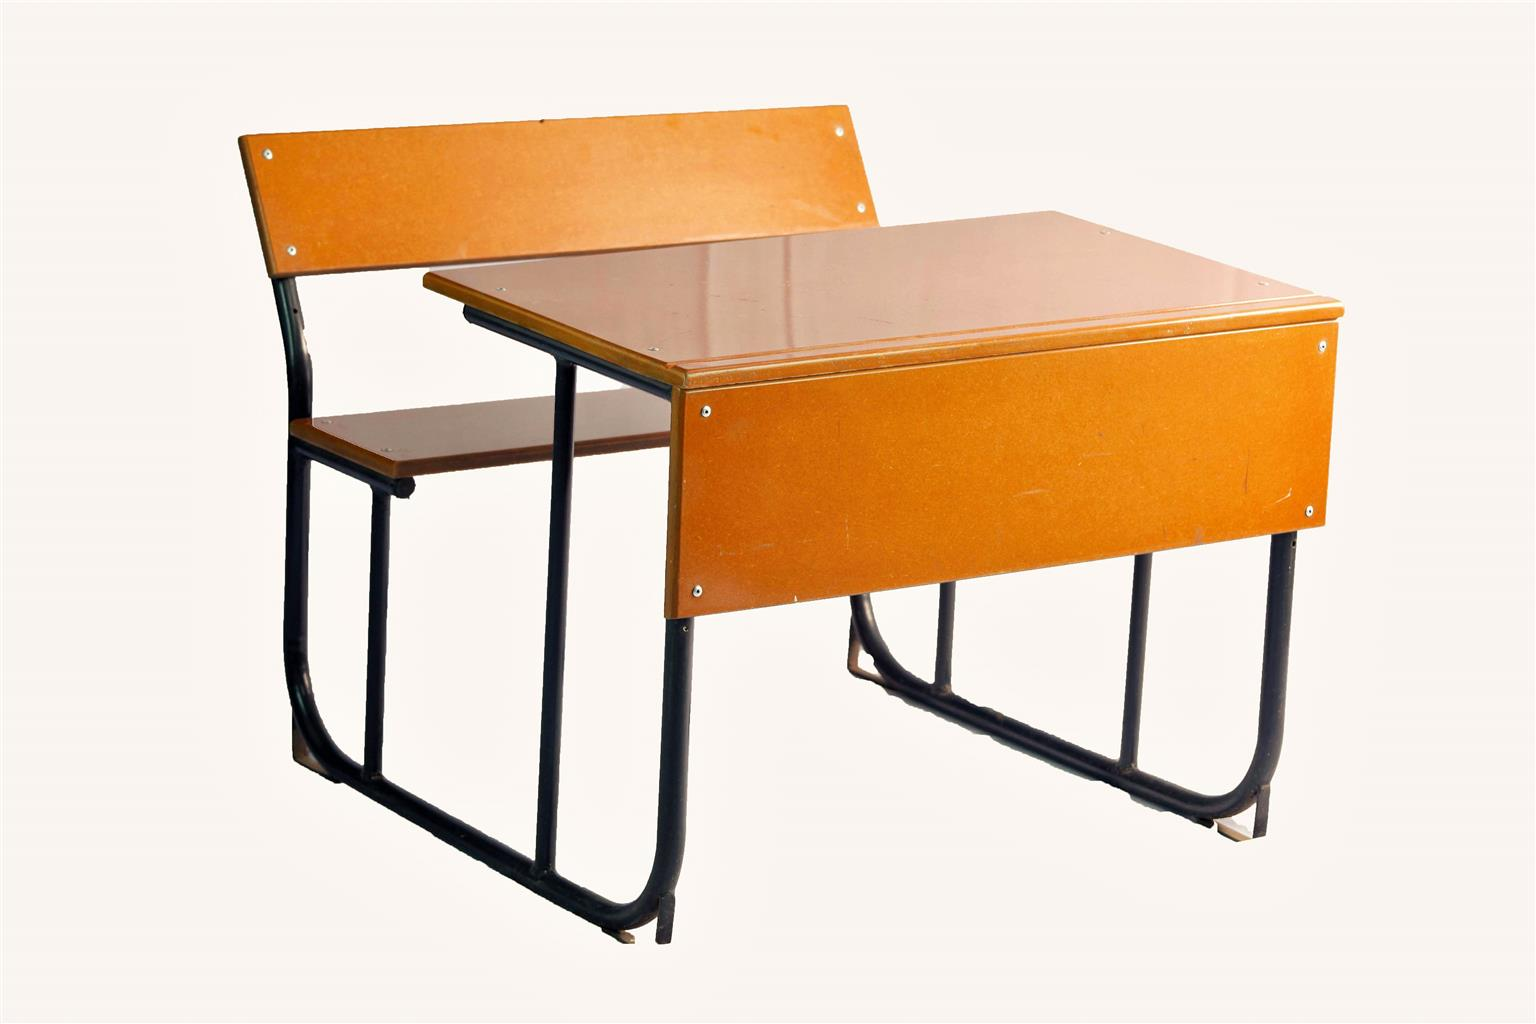 A glimpse into choosing appropriate school furniture and supplies